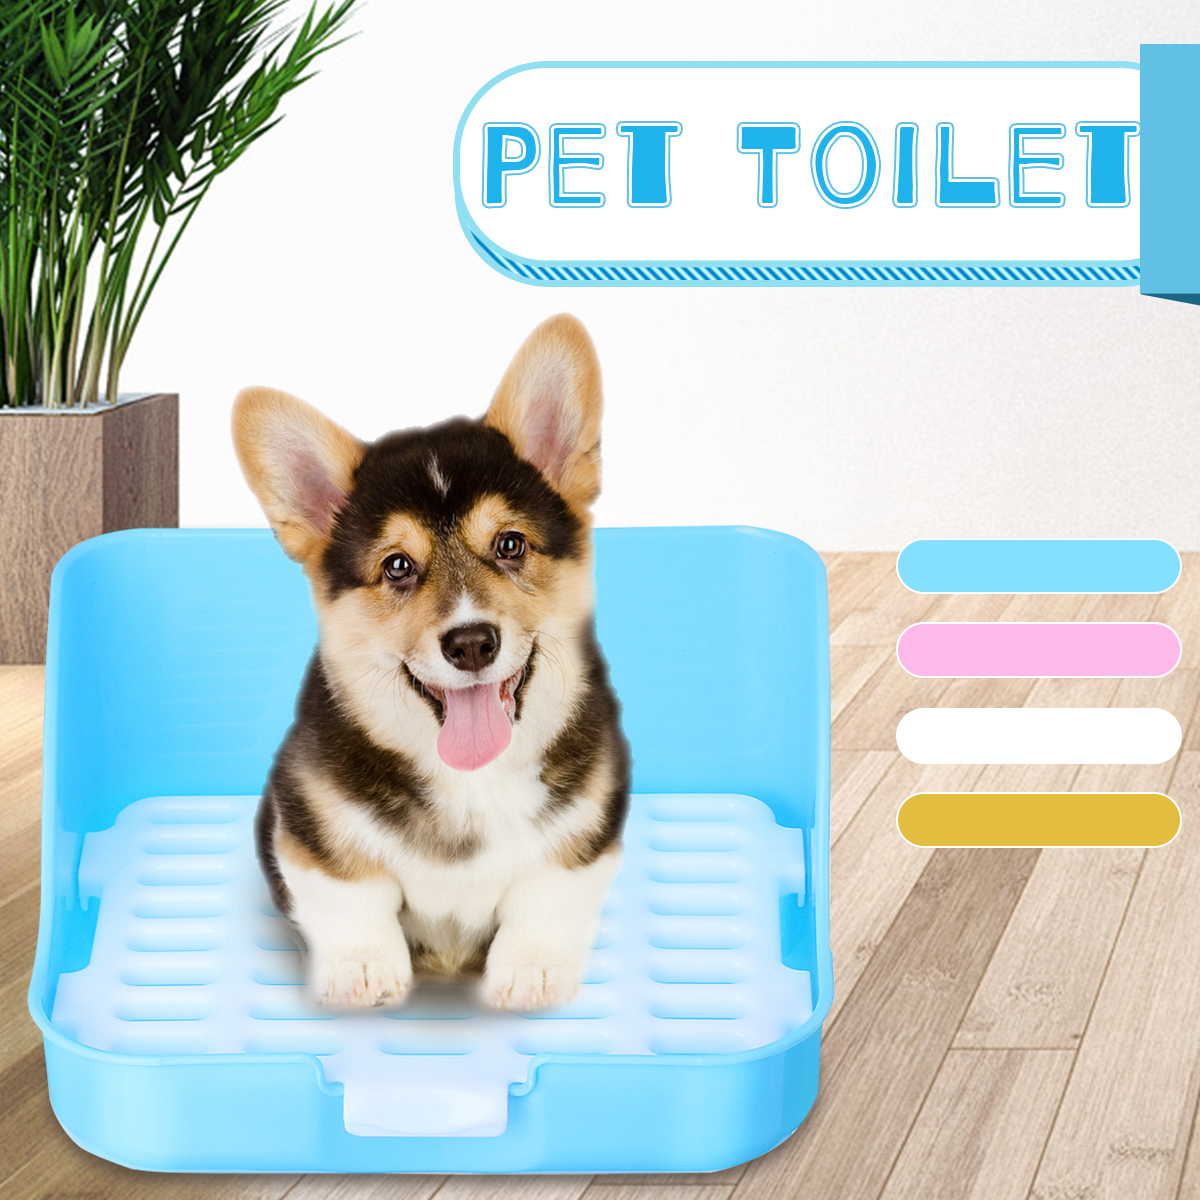 Dog Toilet Potty Pet Dogs Cat Puppy Rabbit Litter Box Training Toilet Tray Easy Clean Indoor Outdoor Home Pet Product Supplies